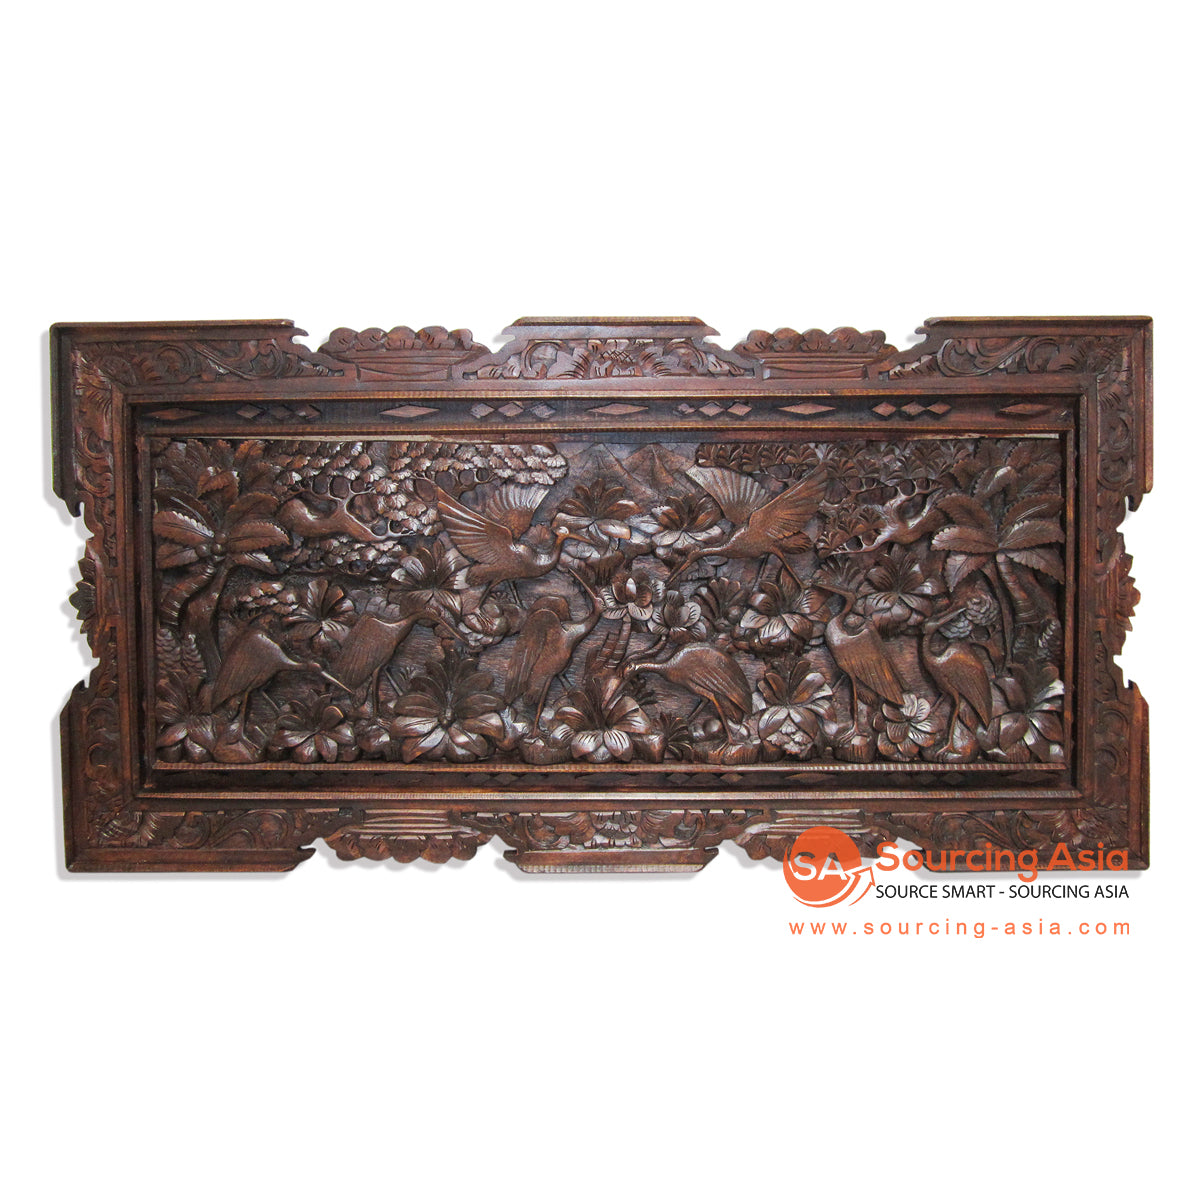 GUR007-FL WOODEN WALL DECORATION WITH CARVING